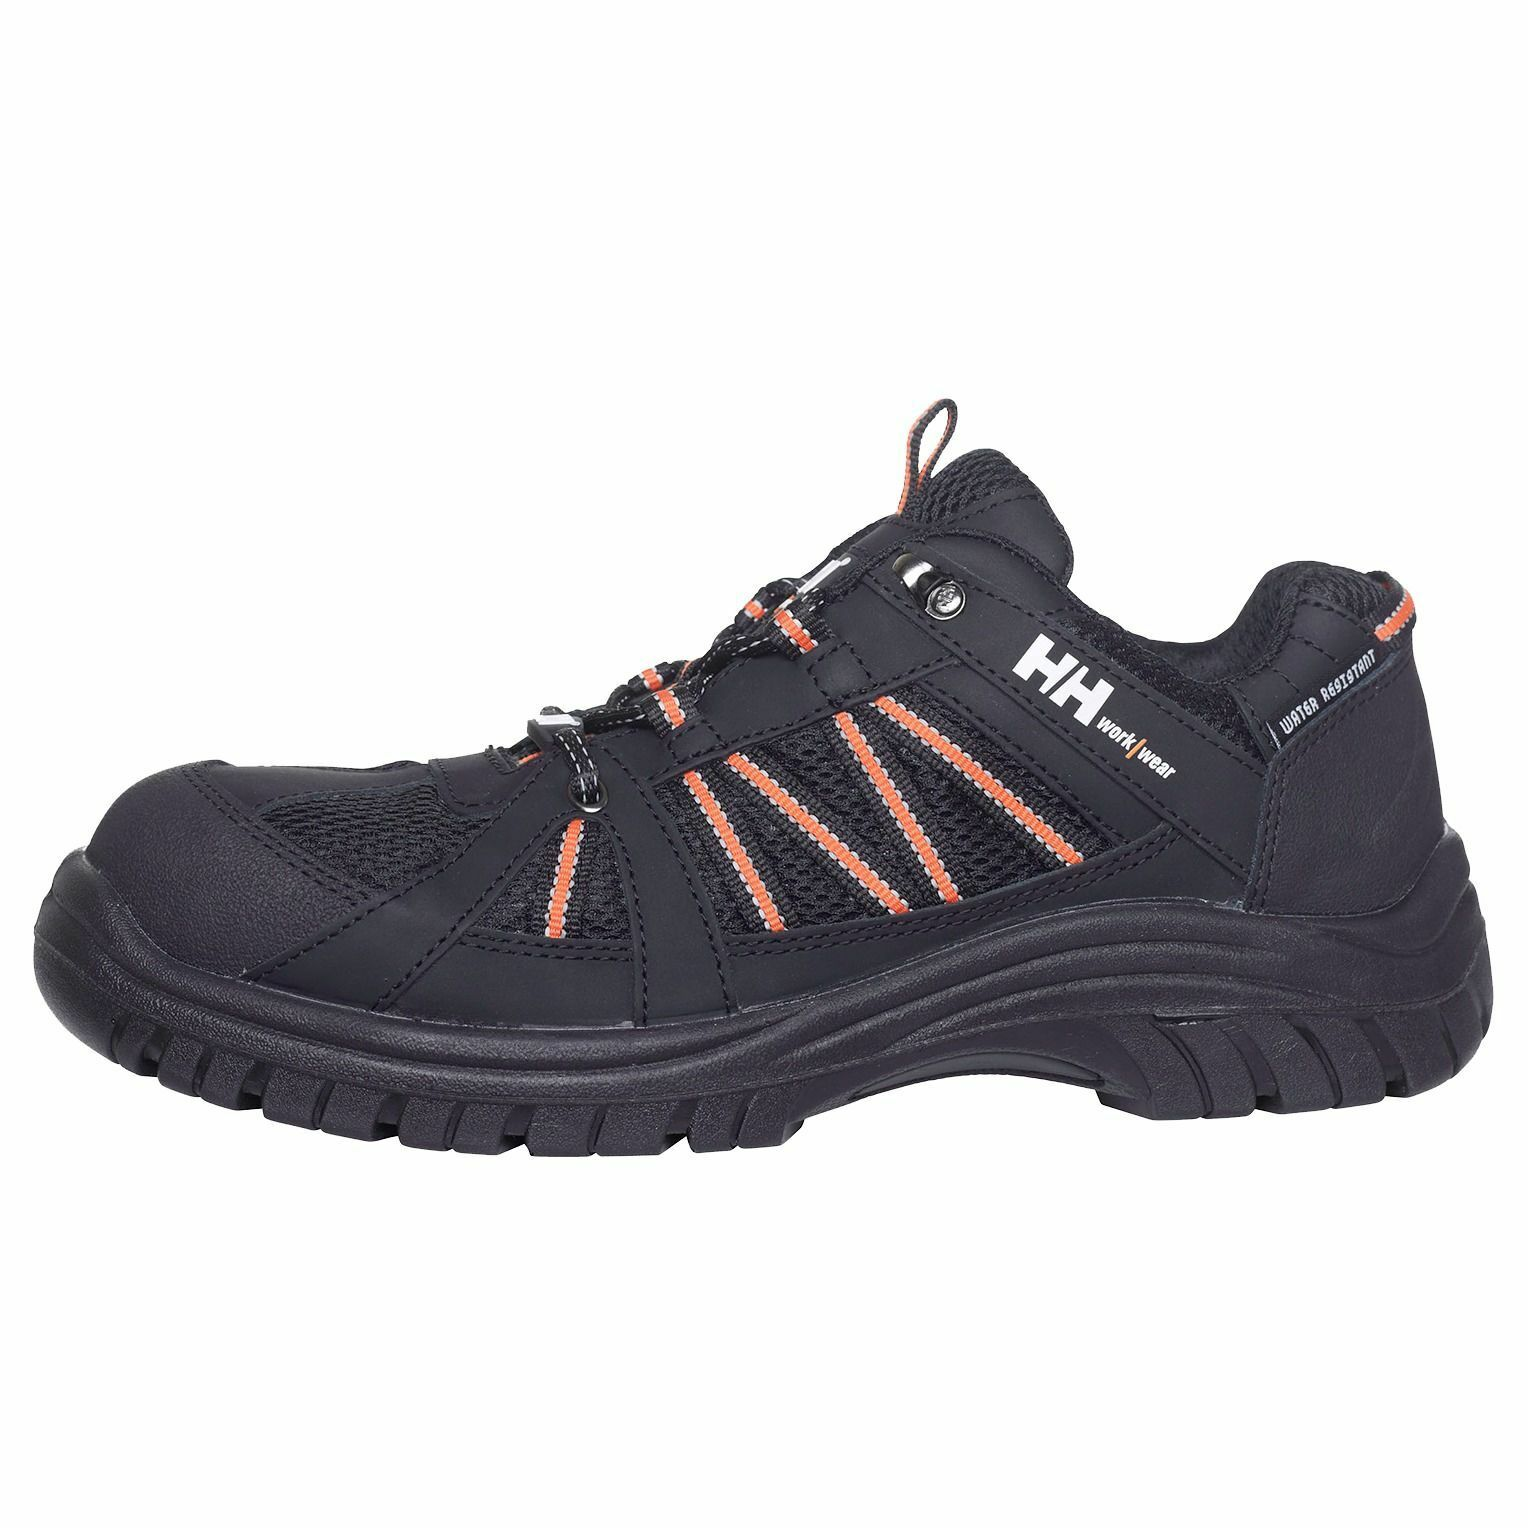 112f47e33cb7 ... Mens Skechers Synergy - Fine Tune 51524 Sports Trainers With Memory Foam.  Close Navigation. Helly Hansen Kollen Trainer - 78201